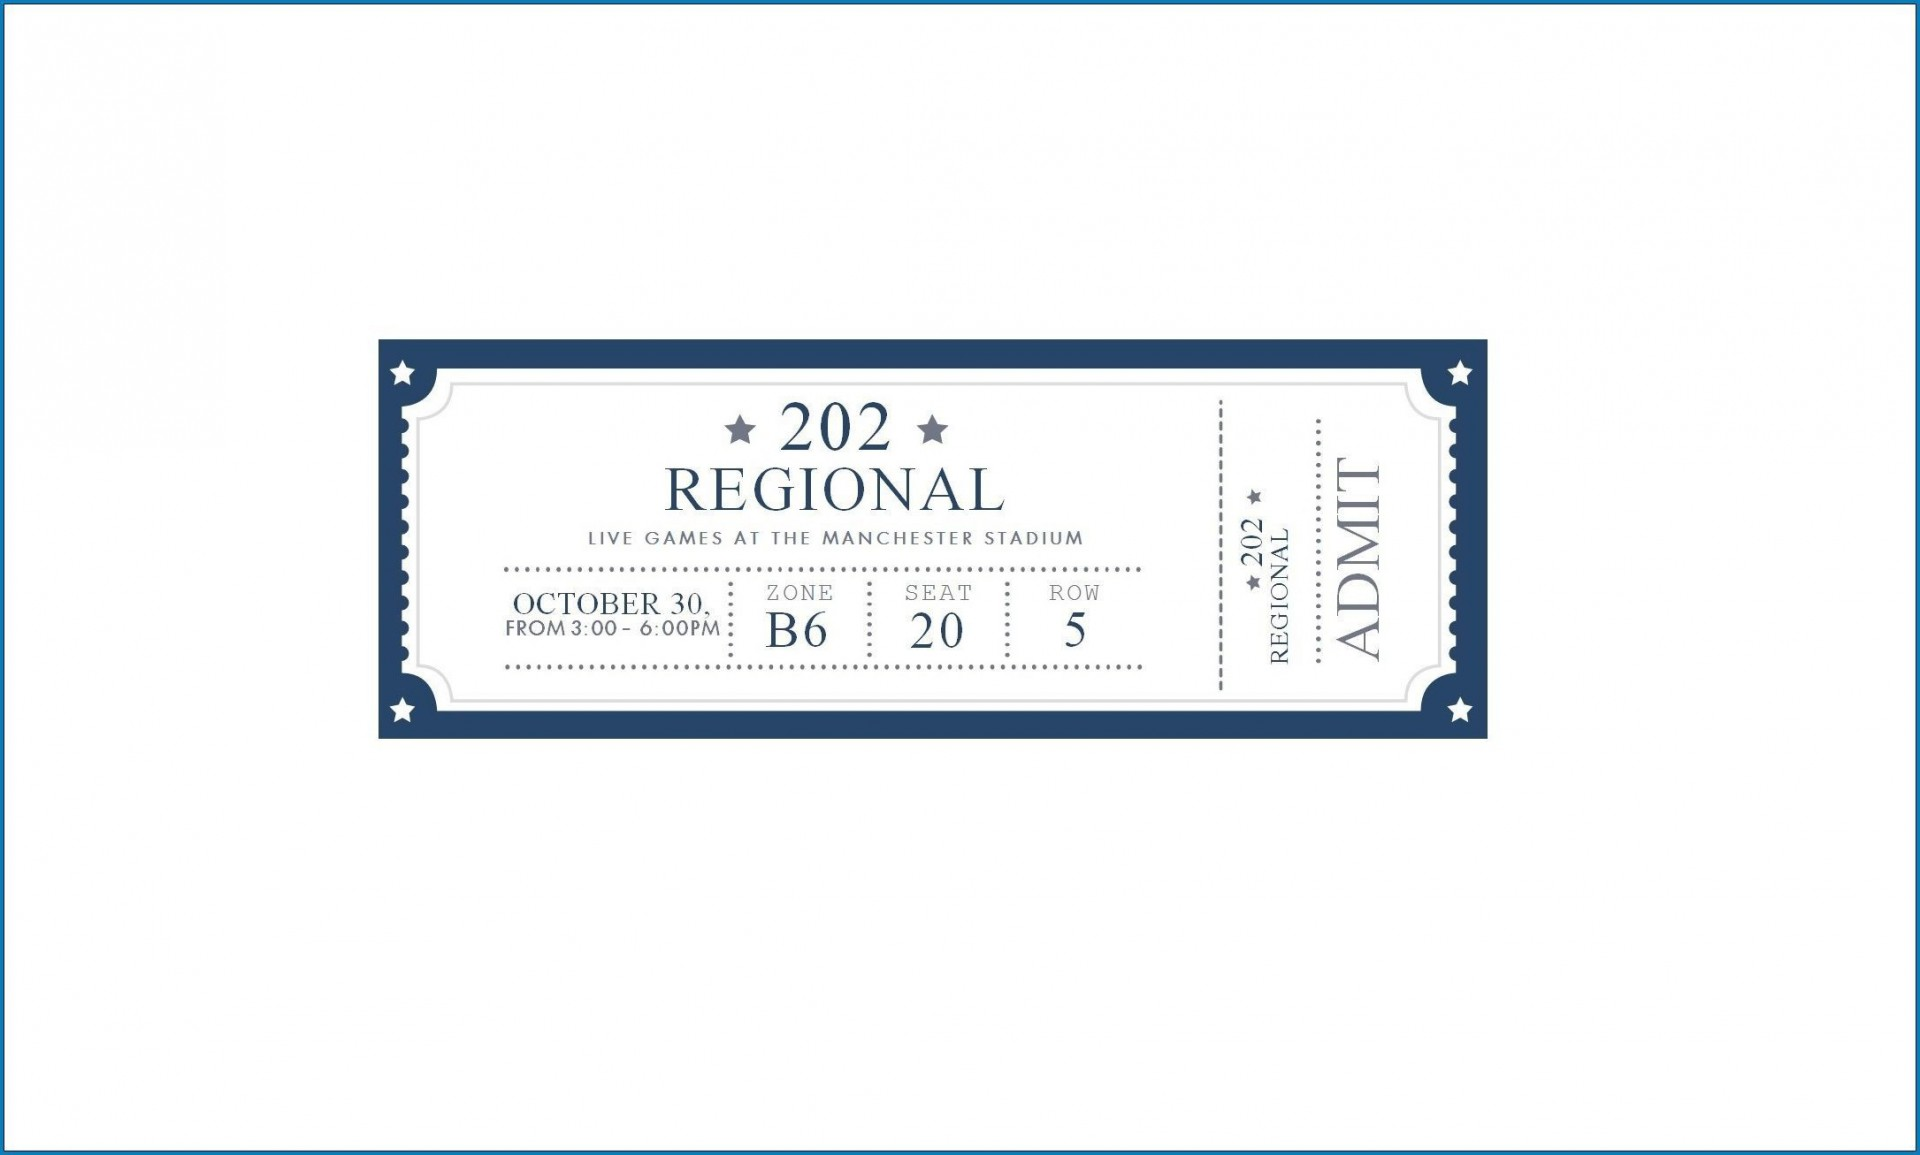 002 Wondrou Editable Ticket Template Free High Definition  Word Airline Raffle1920